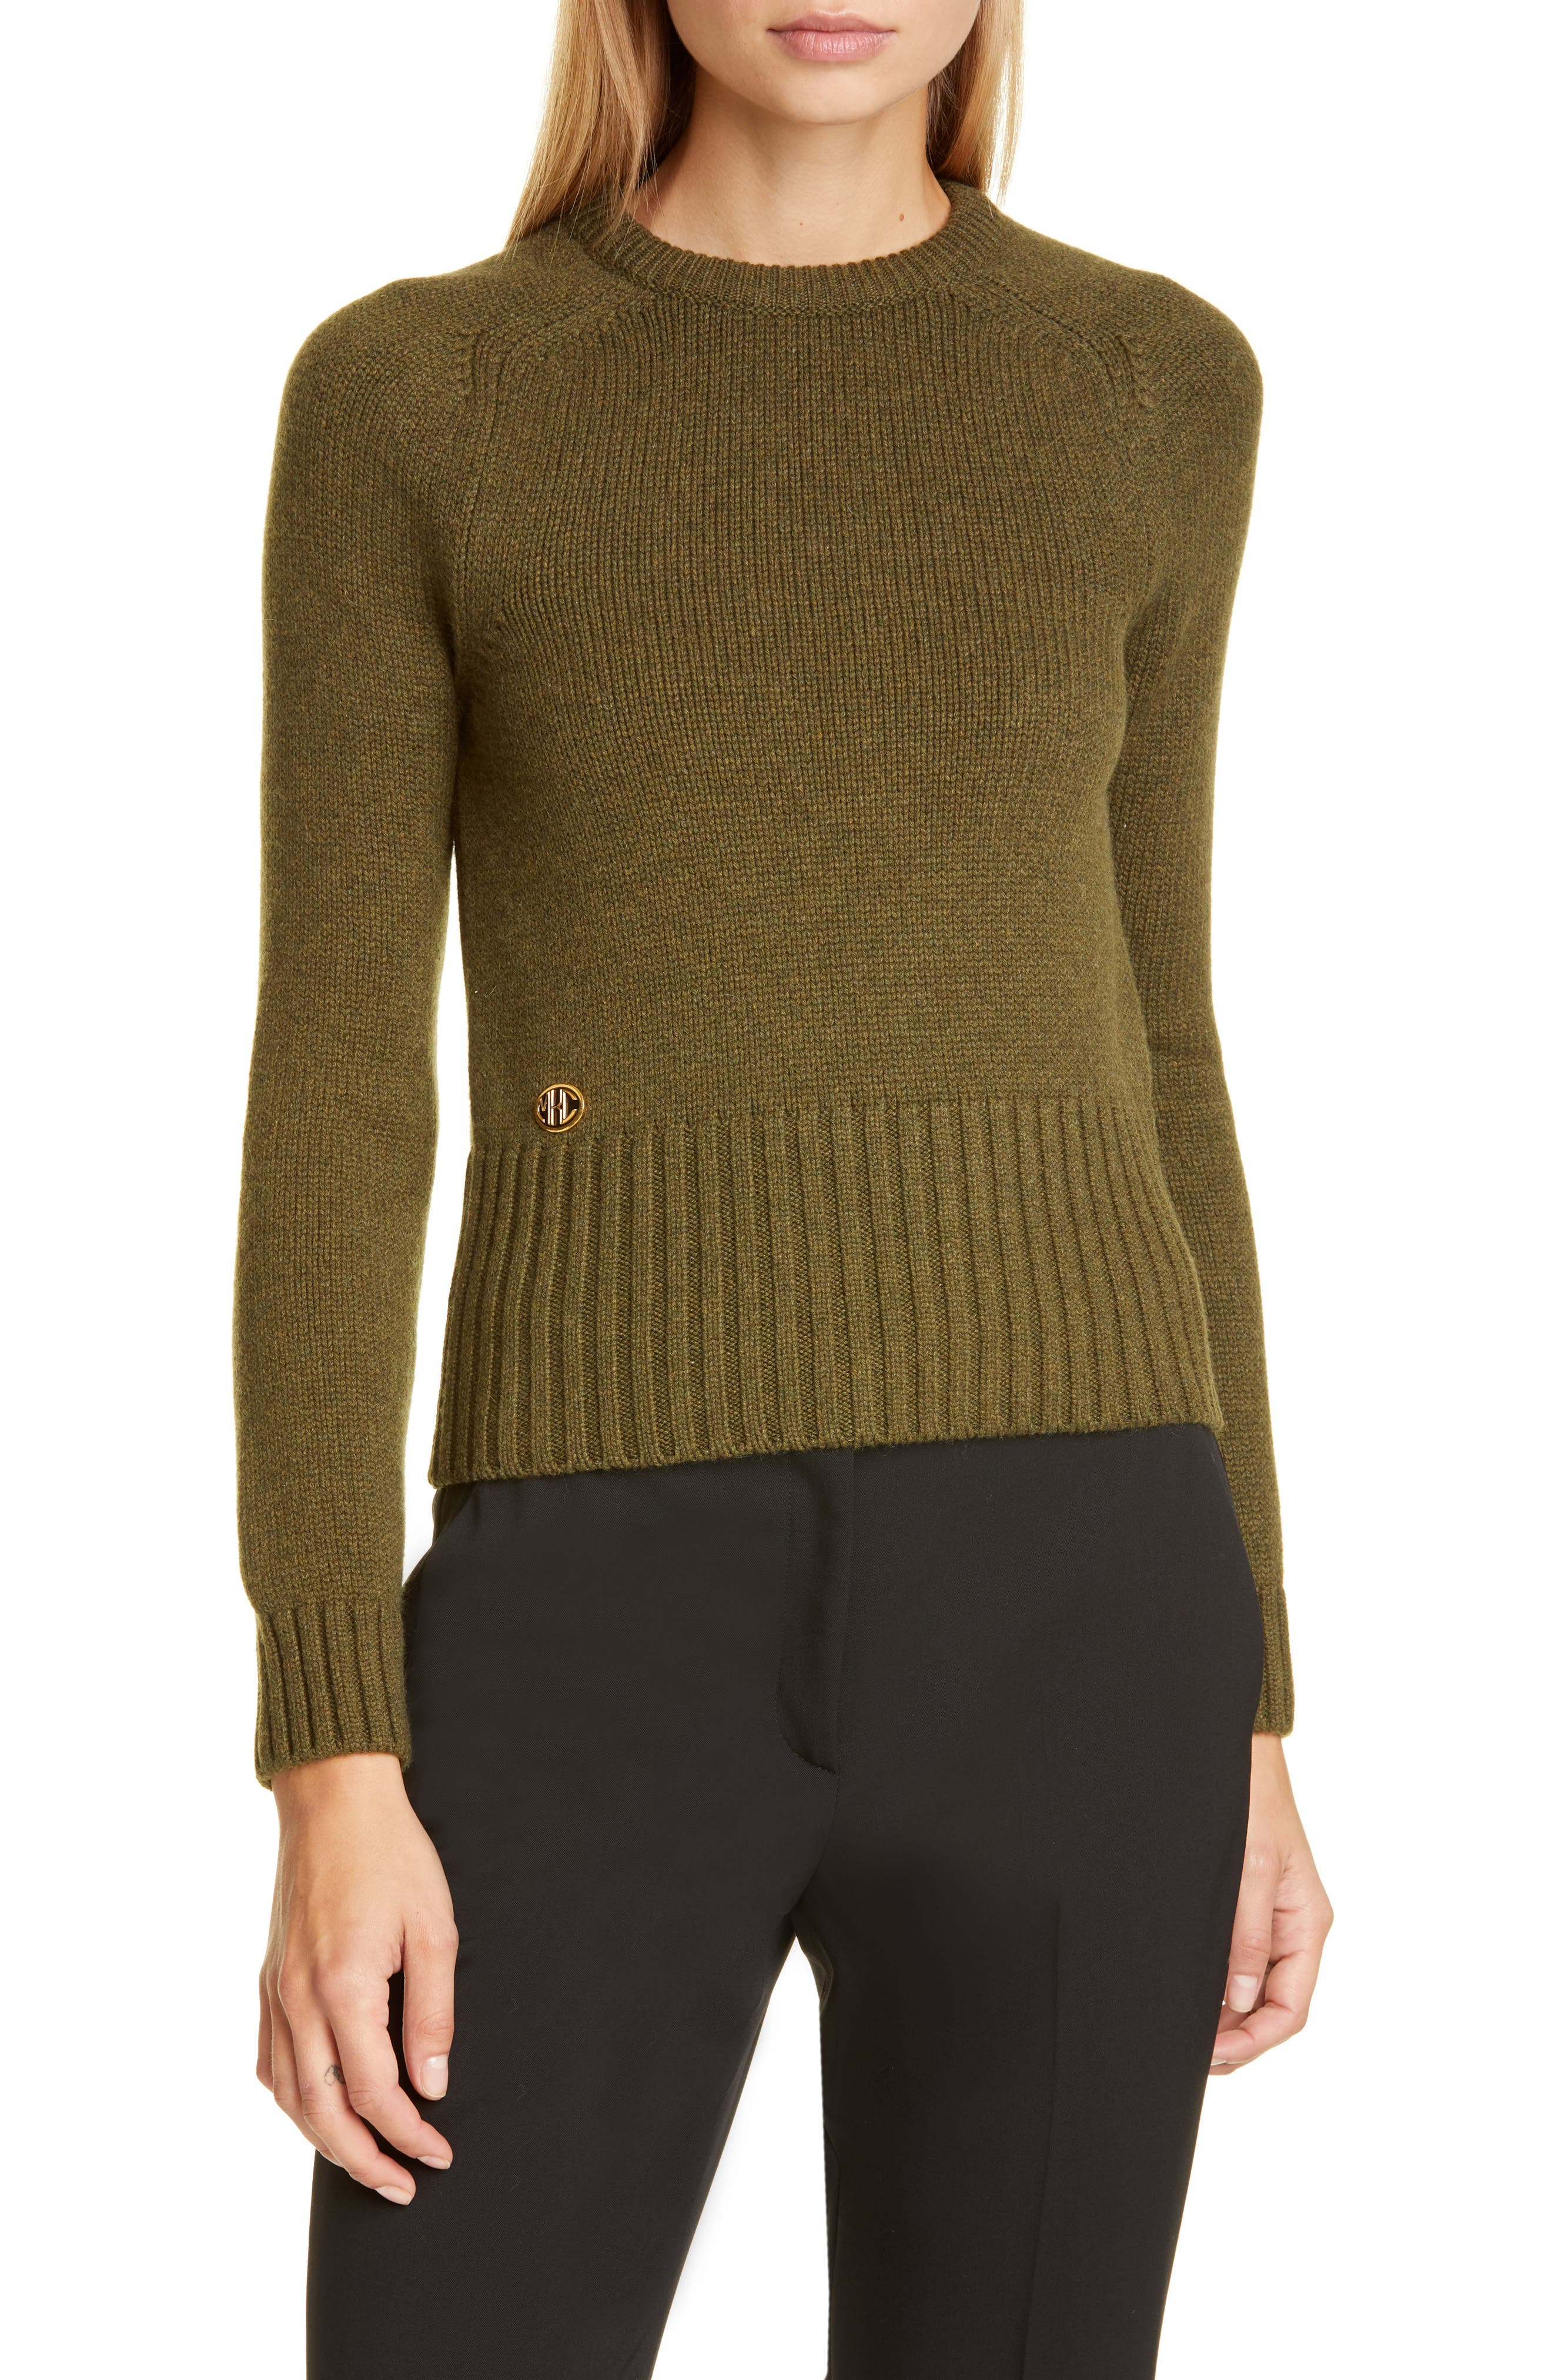 A logo plate gleams above the elongated ribbed hem of this snug crewneck pullover knit from supple Italian cashmere in an earthy hue. Style Name: Michael Kors Collection Logo Monogram Cashmere Sweater. Style Number: 5876889. Available in stores.